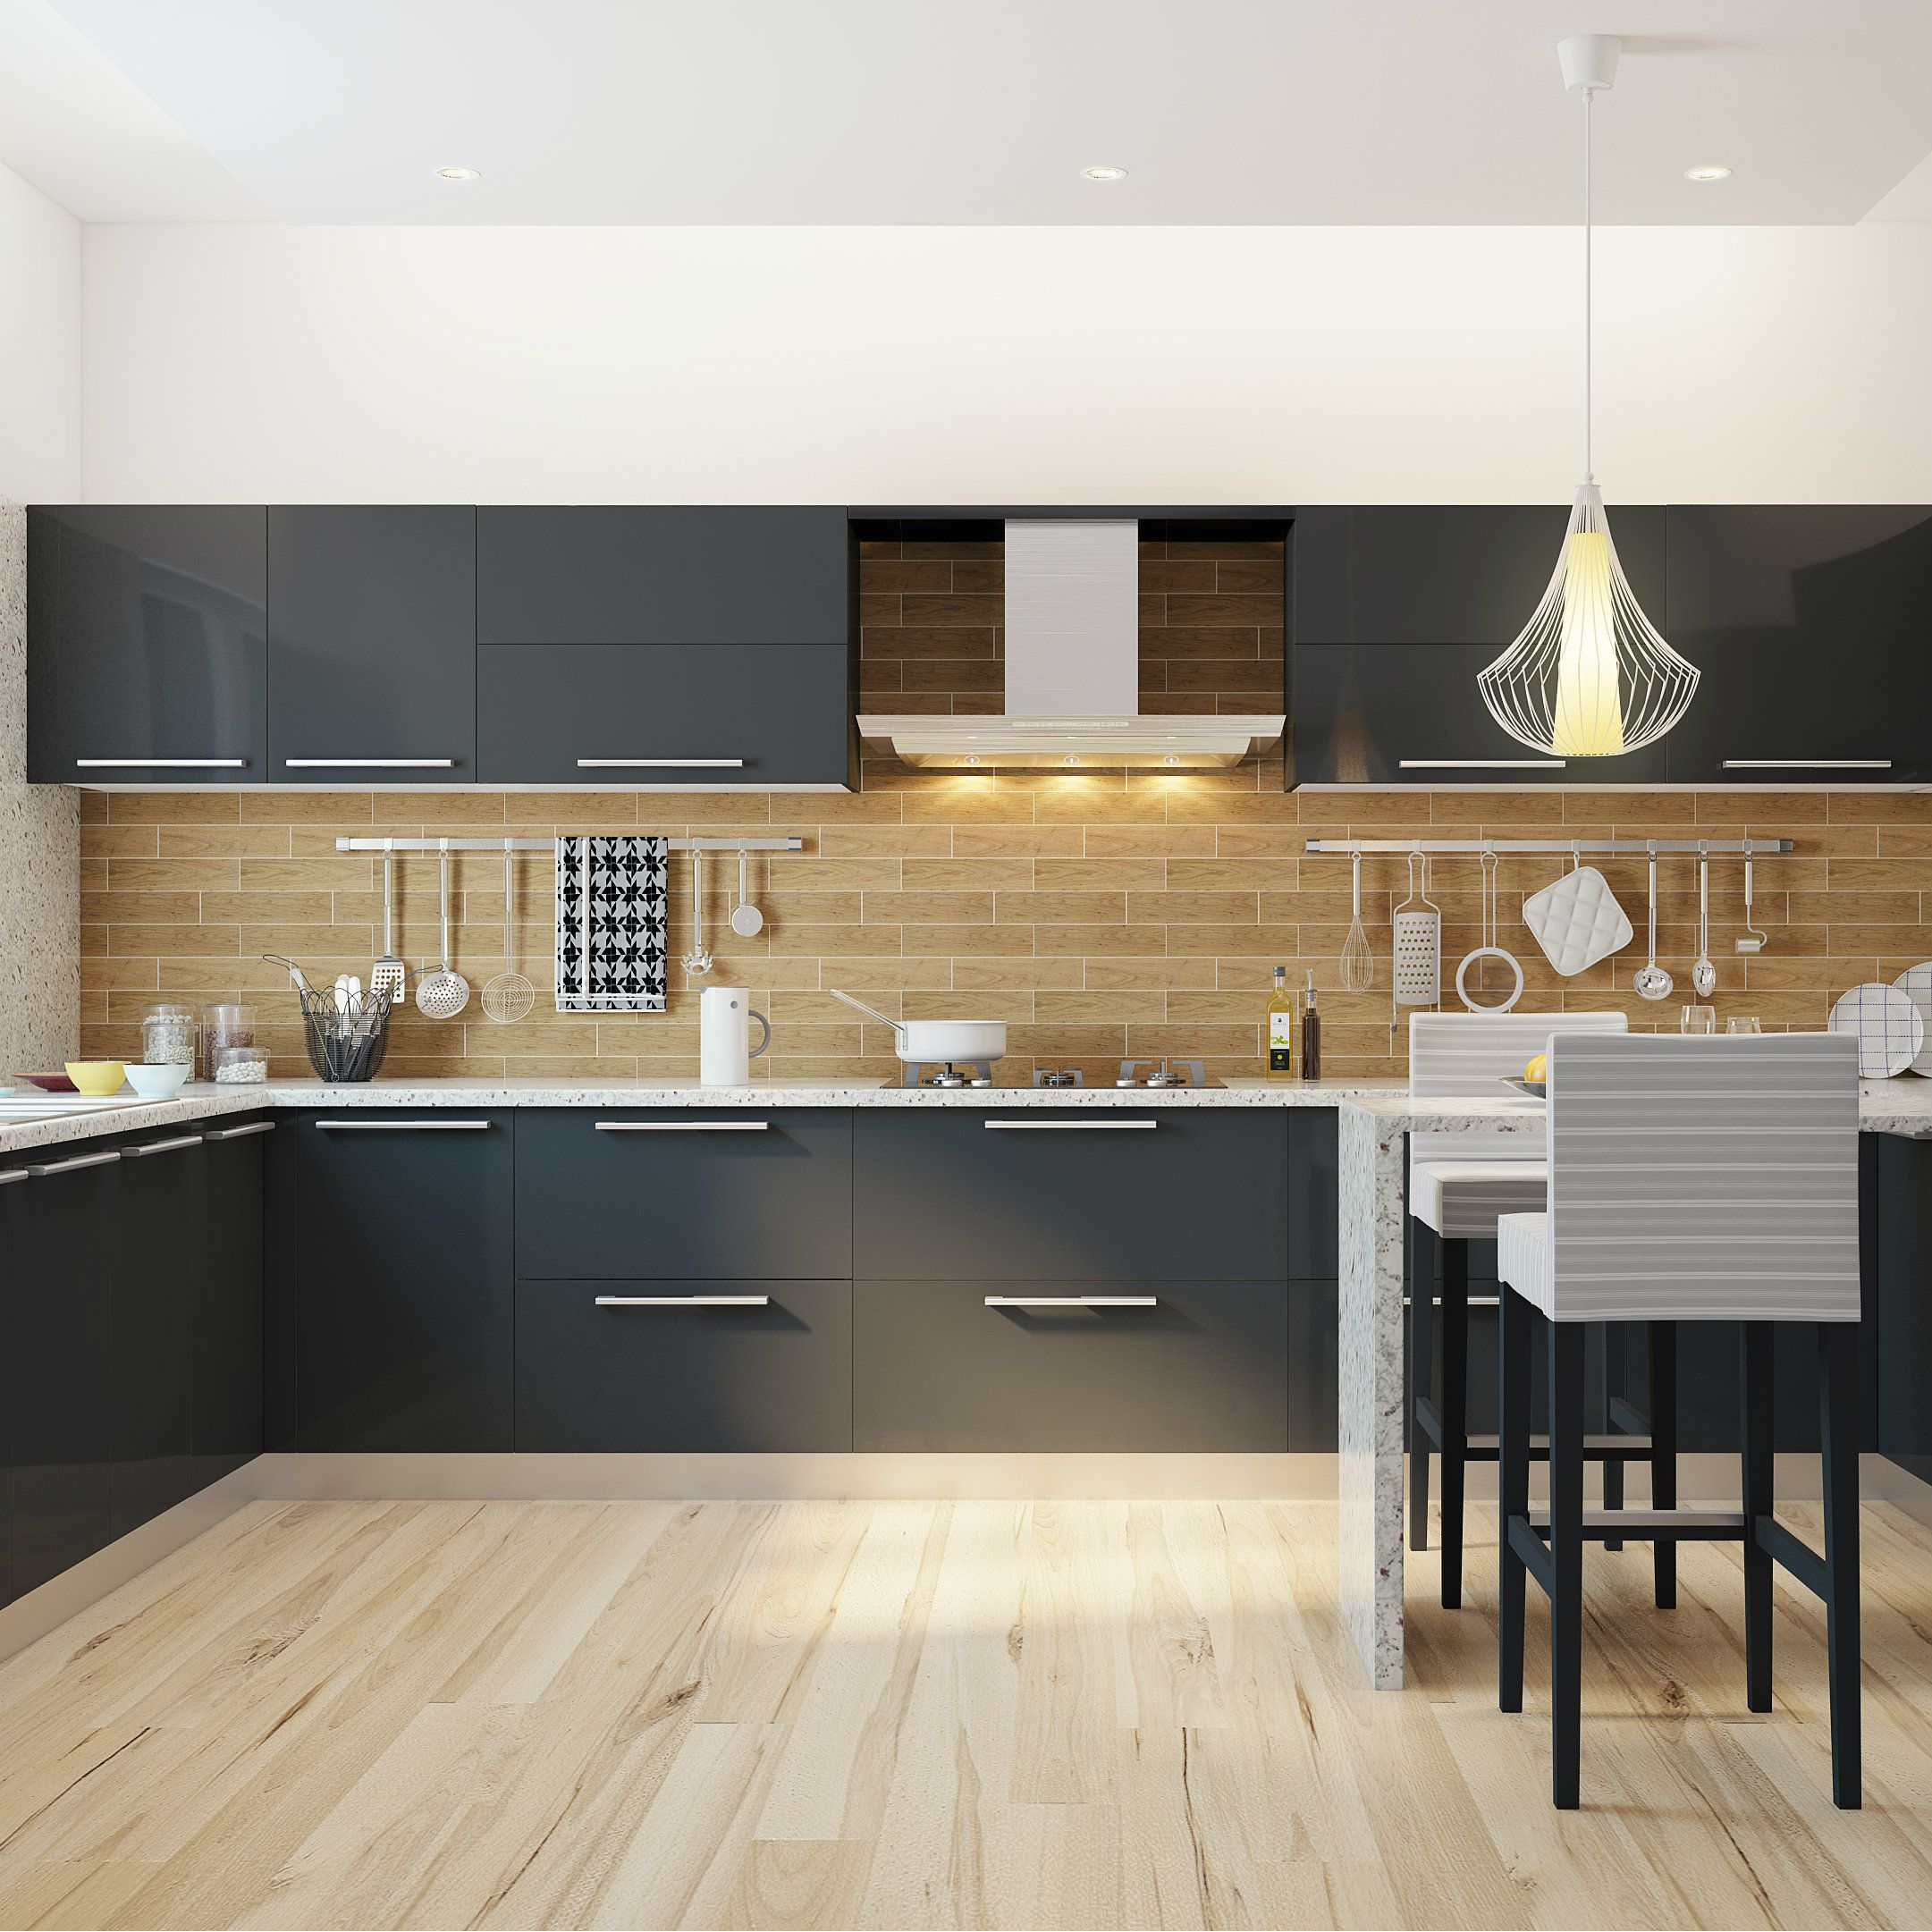 Sprawling Modular Kitchen With A Breakfast Counter